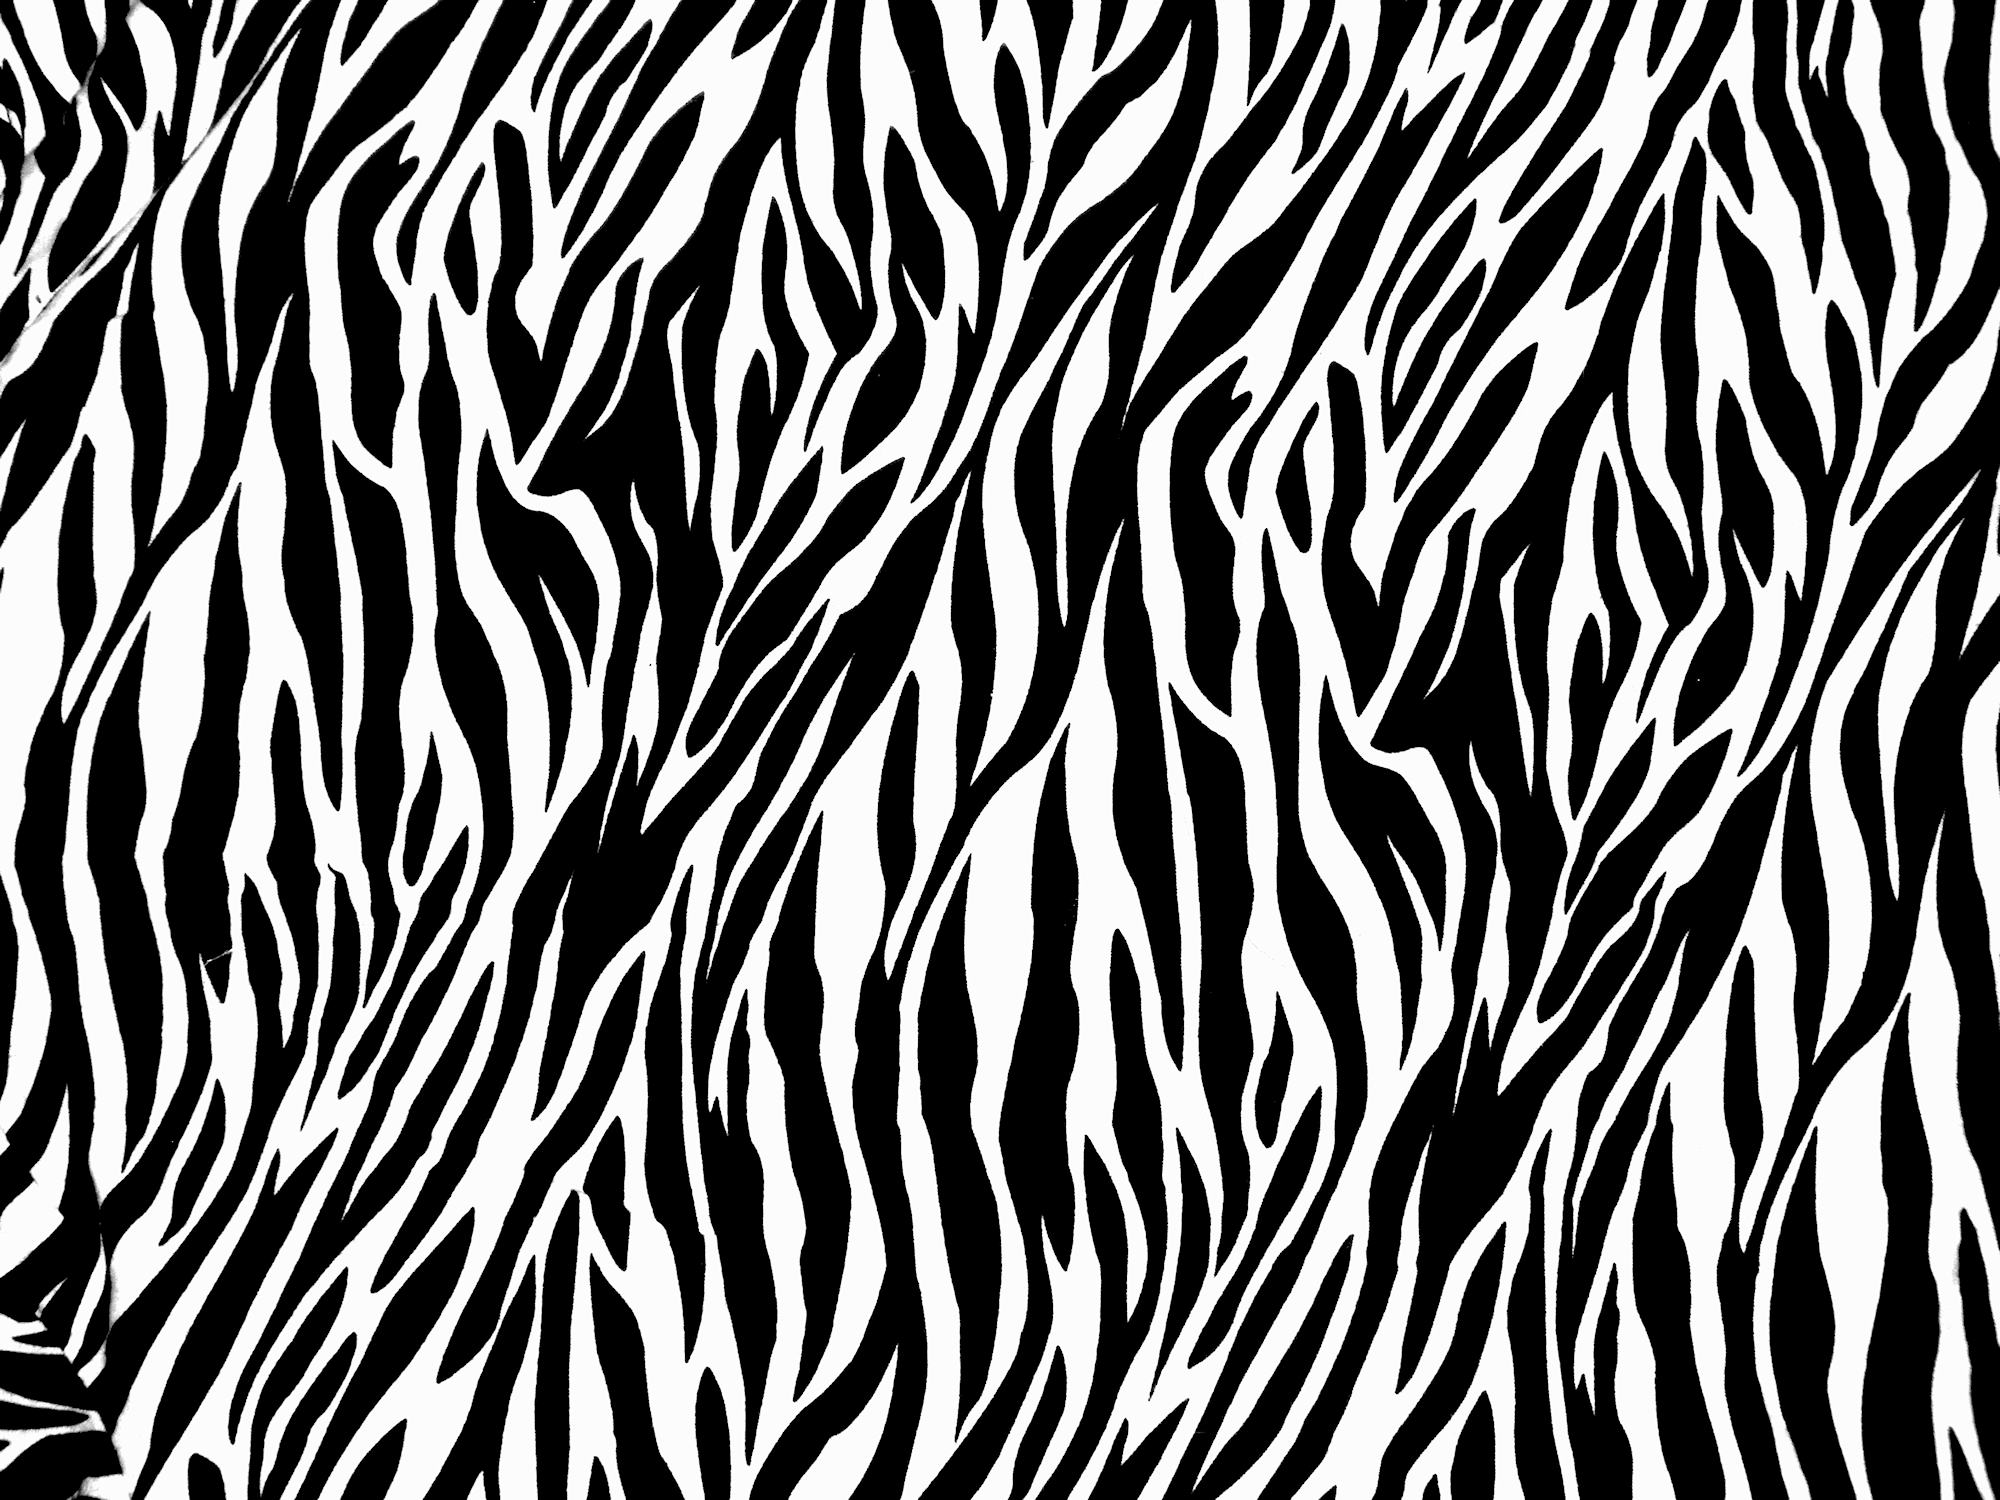 Tiger Print clipart black and white #2